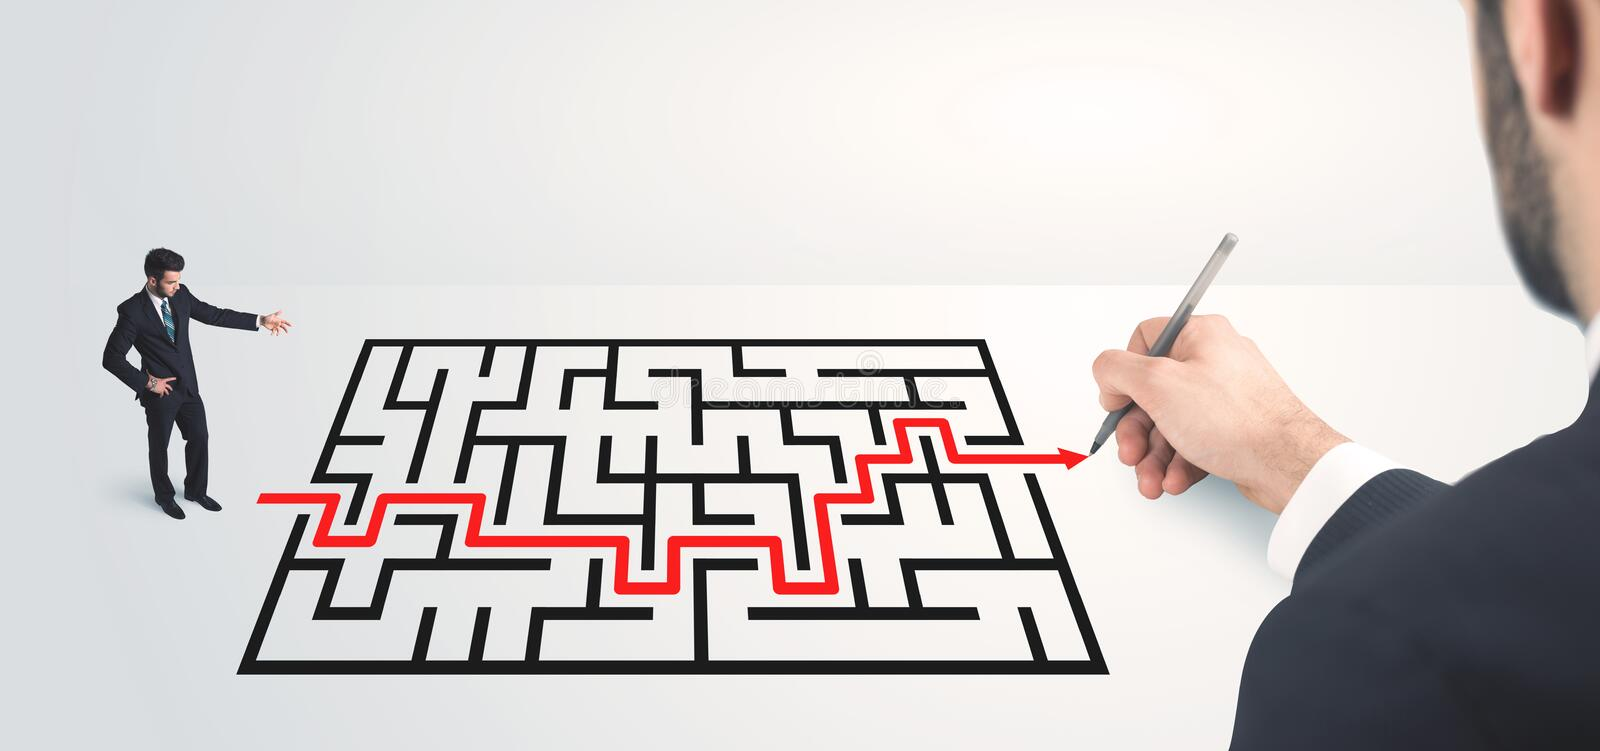 Business man looking at hand drawing solution. Maze solution concept royalty free stock image